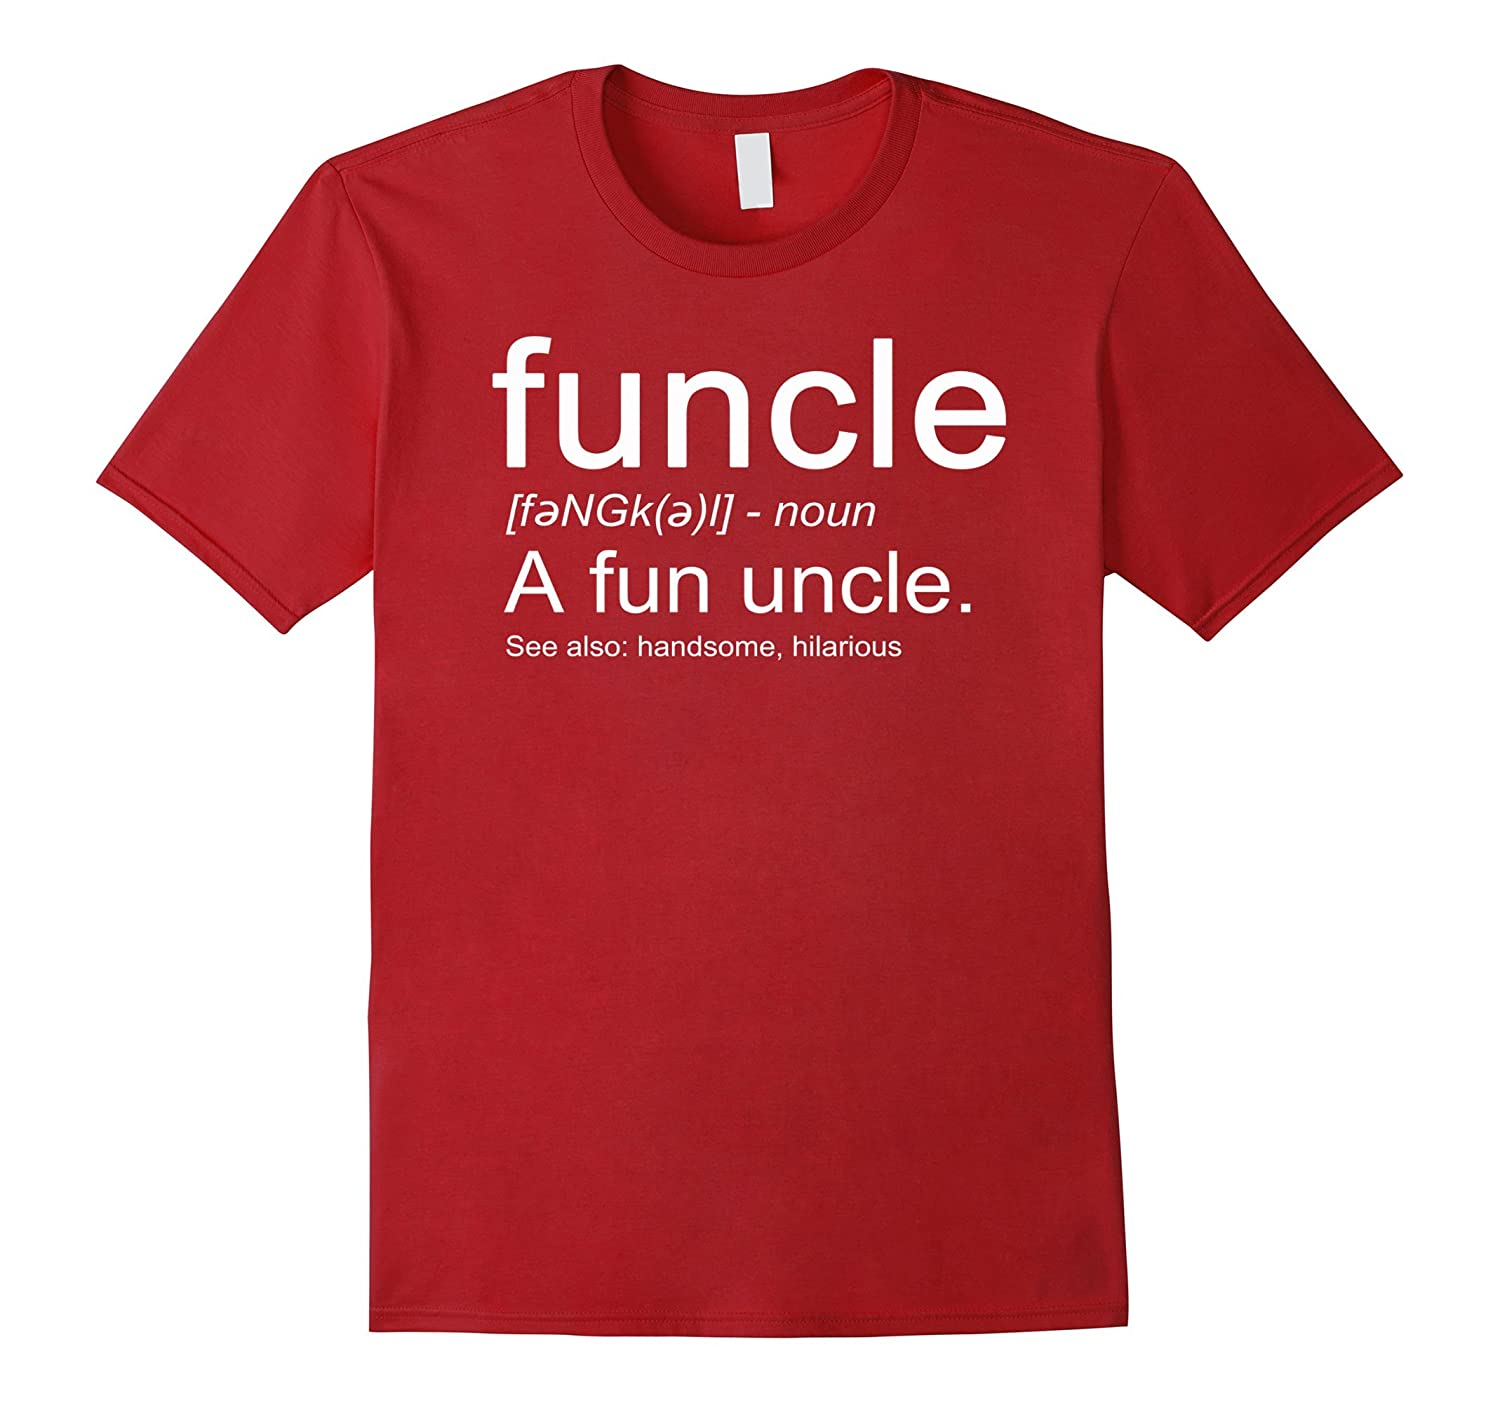 ca2c0bcd Funcle a Fun Uncle Definition Shirt, Funny Novelty Tee-ANZ ⋆ Anztshirt